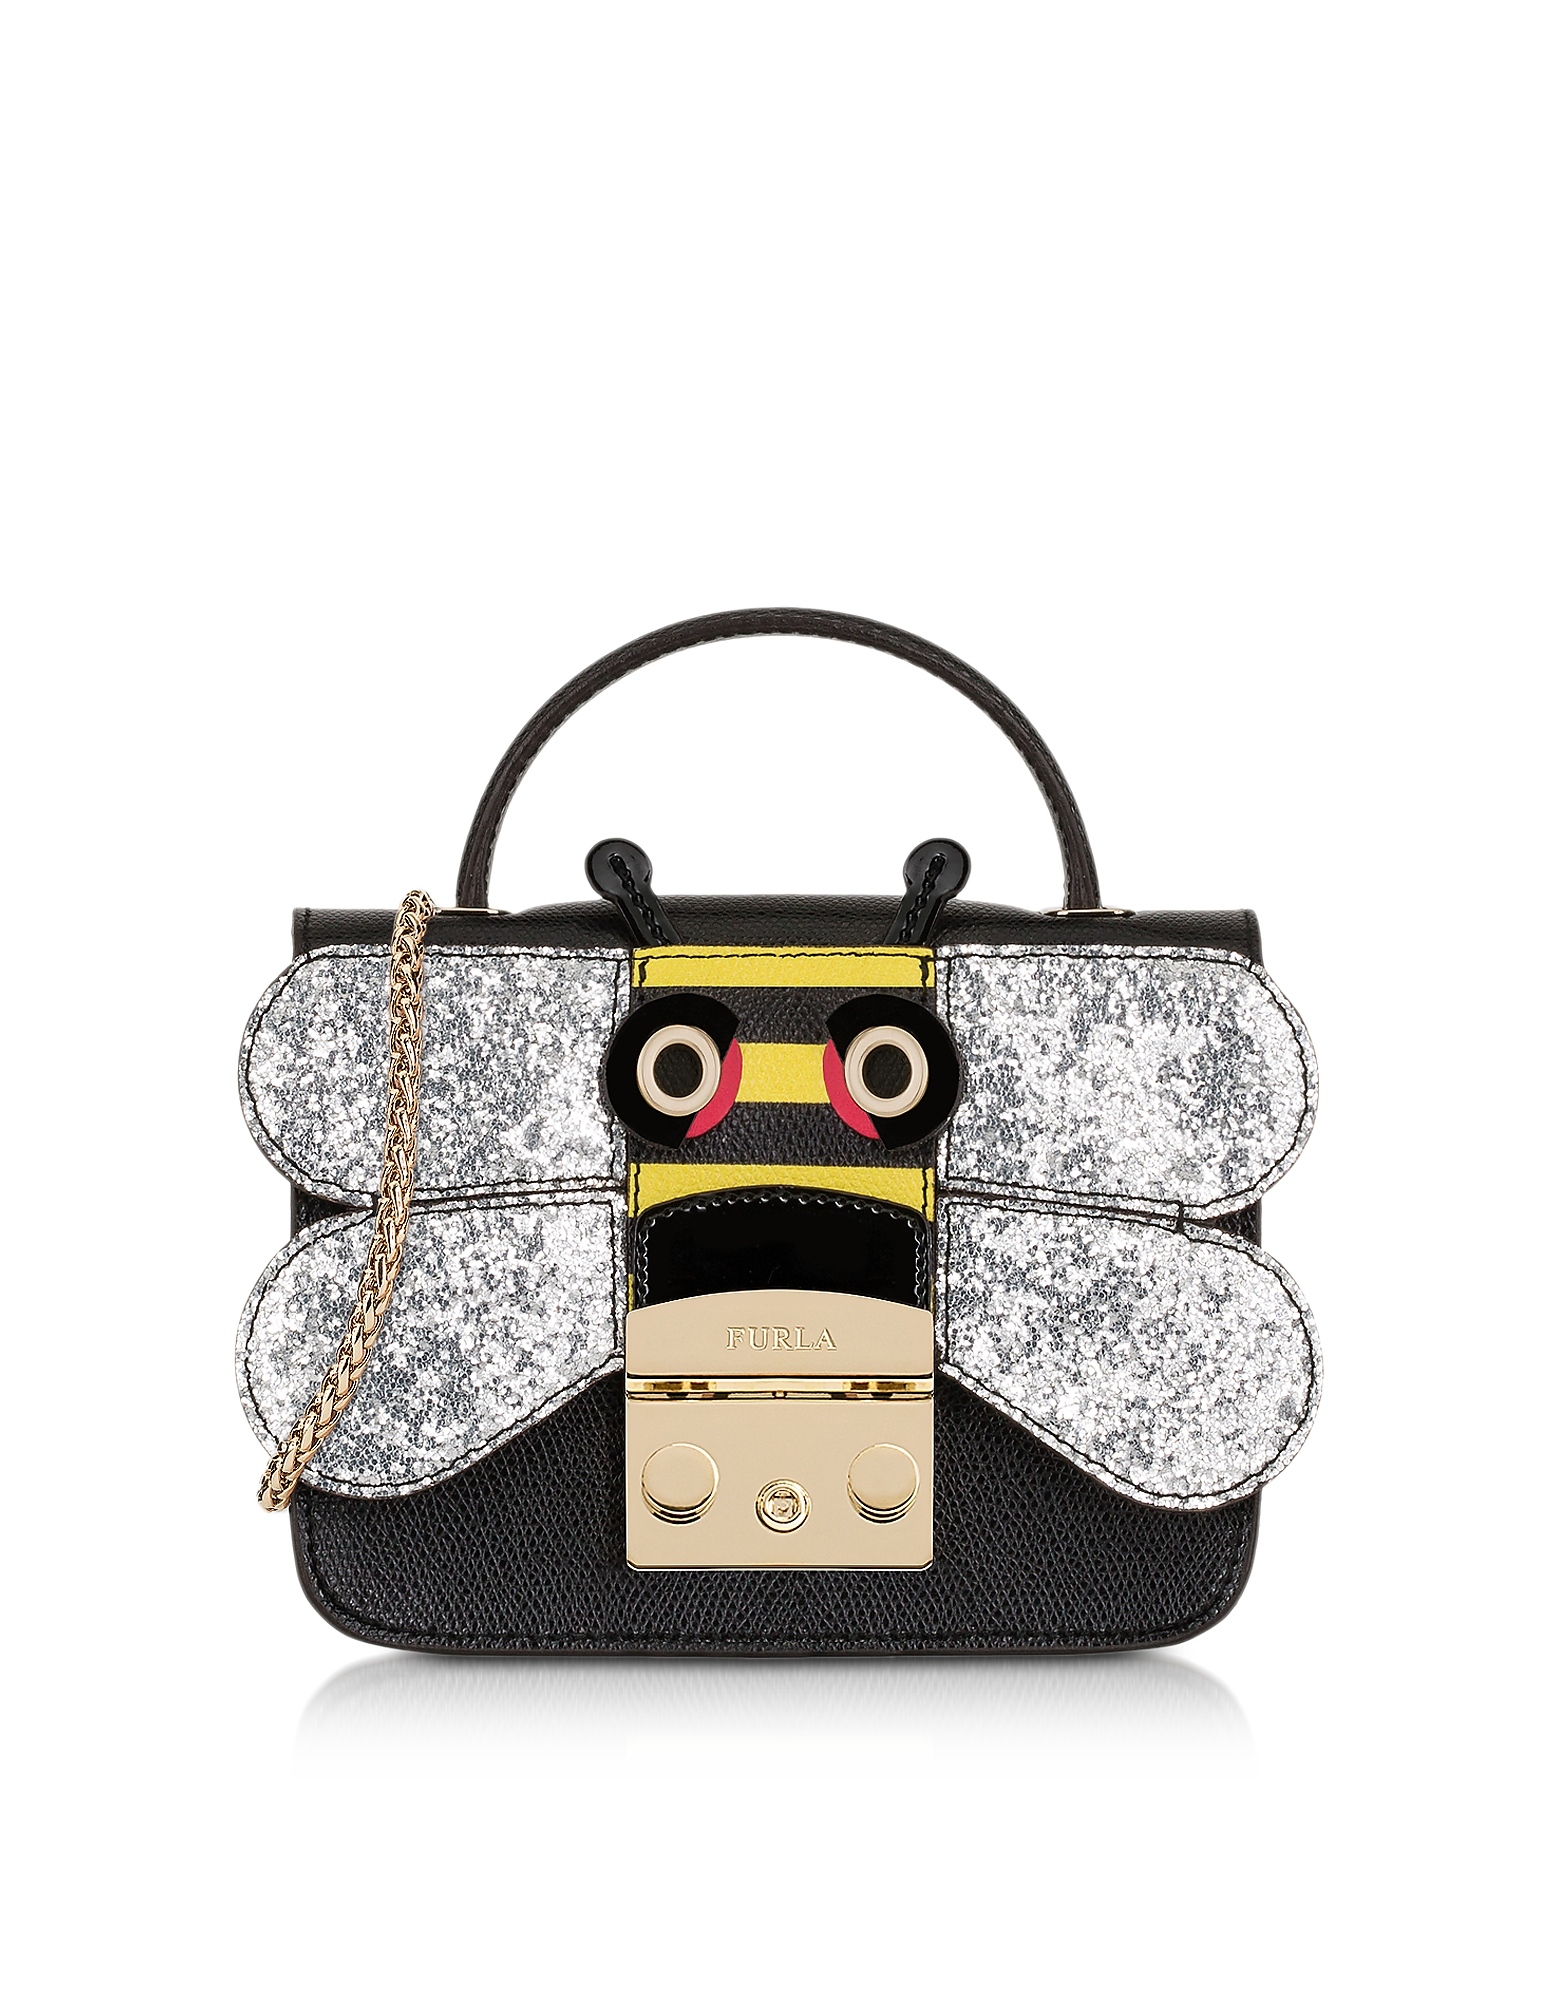 Furla Handbags, Onyx and Silver Metropolis Doodle Mini Crossbody Bag